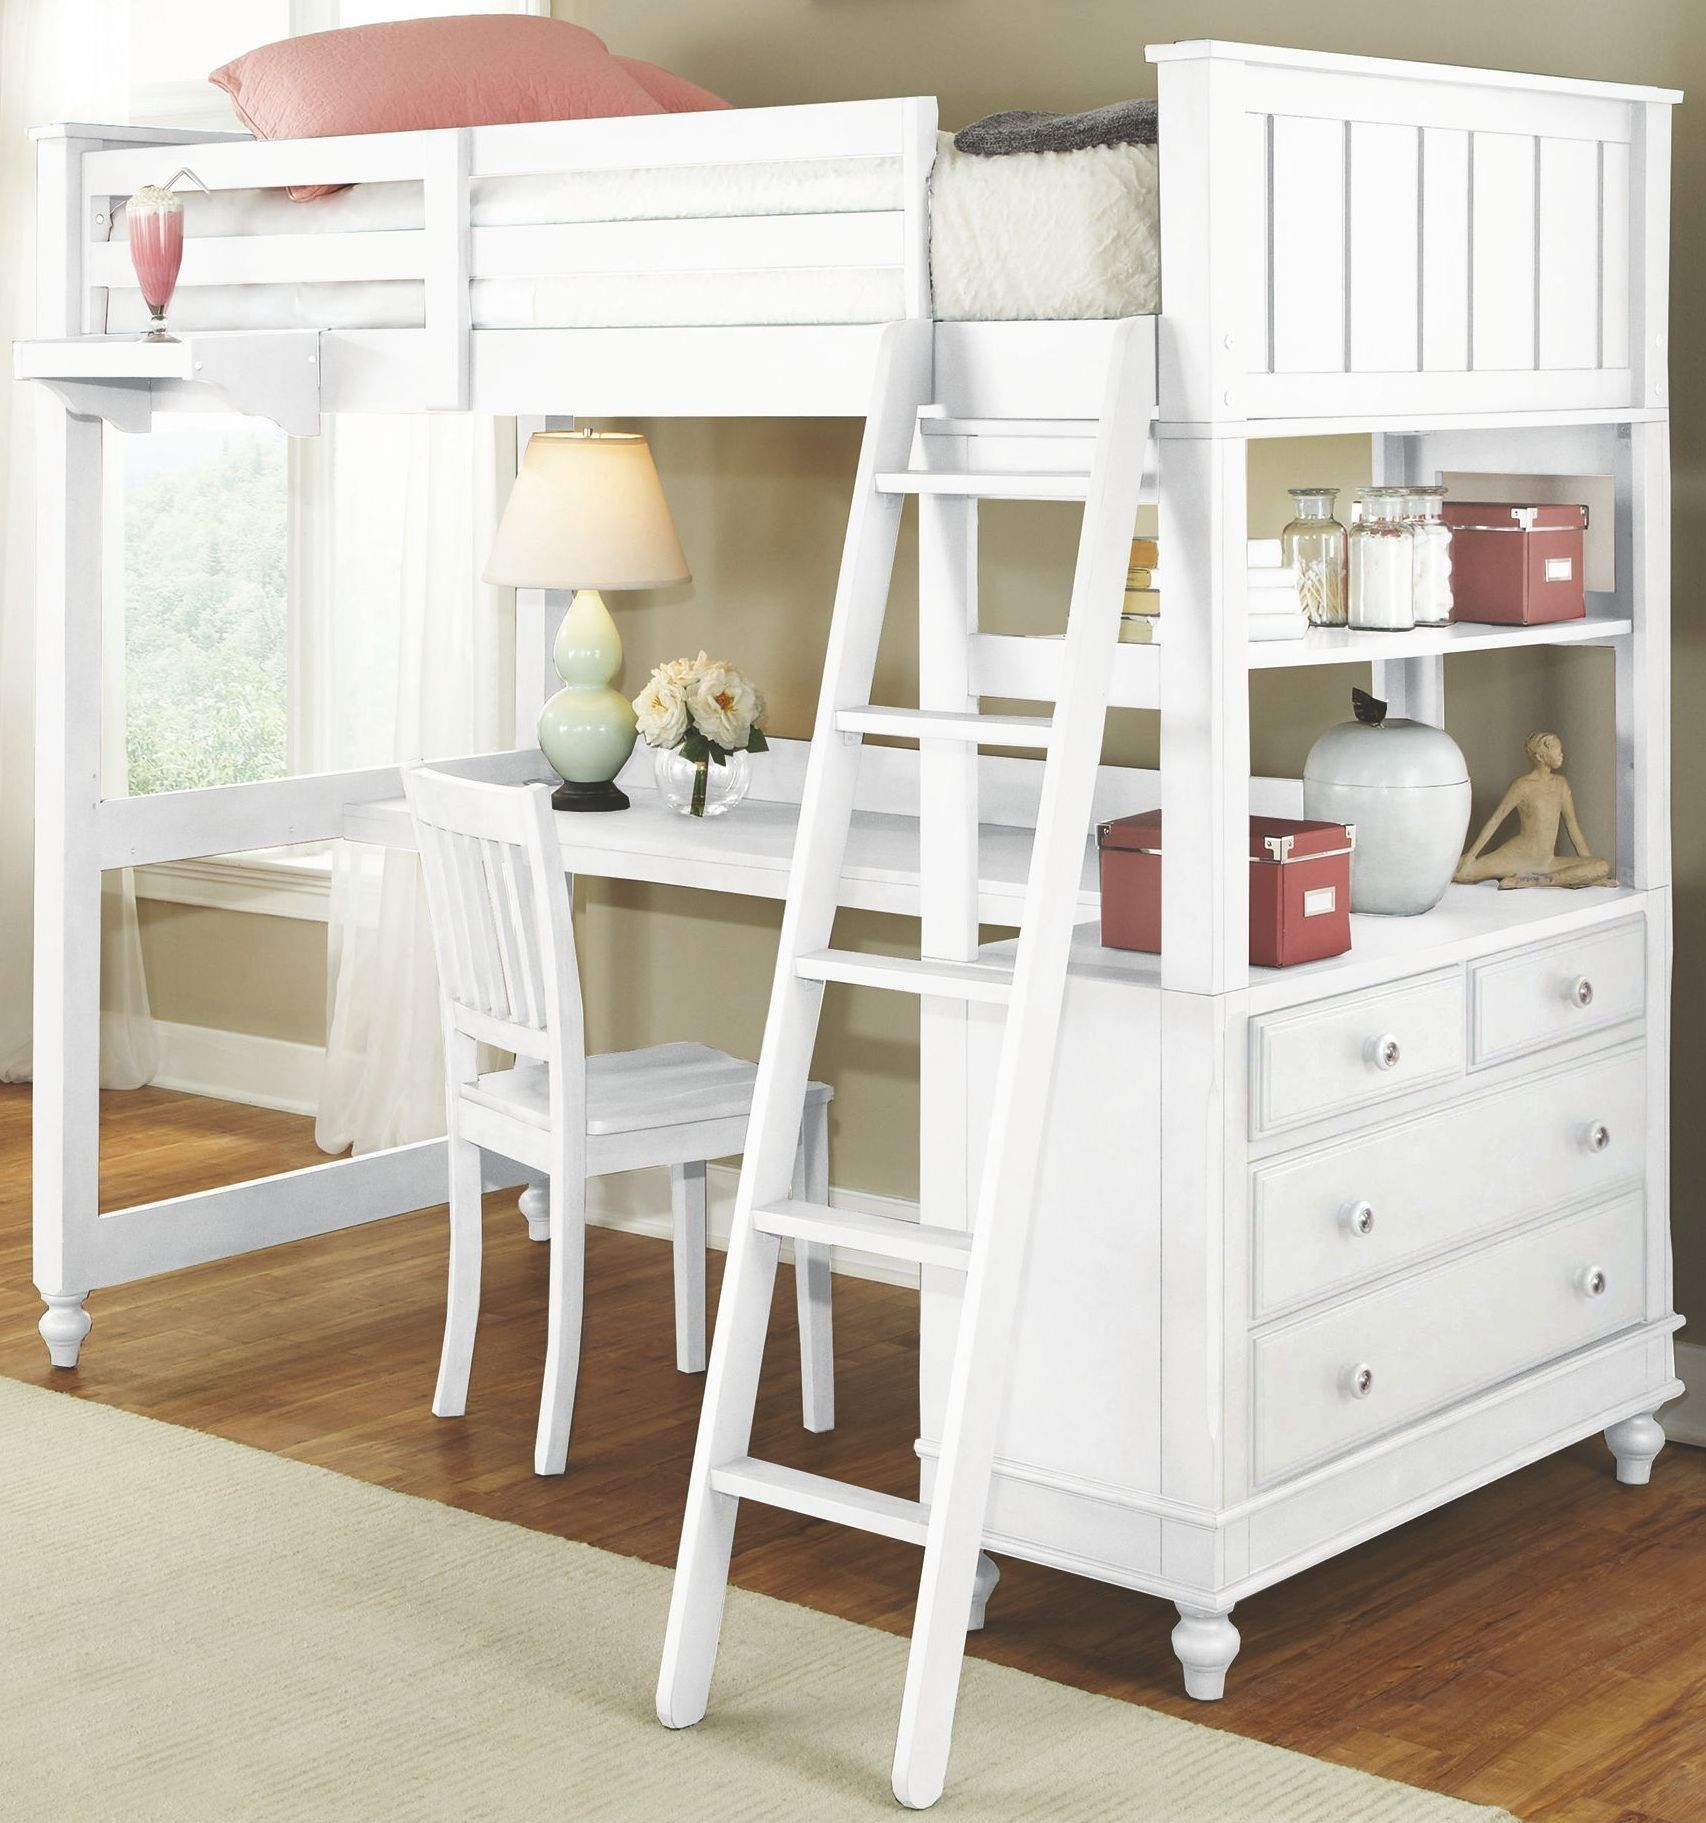 Lake House White Twin Loft Bed with Desk Twin size loft